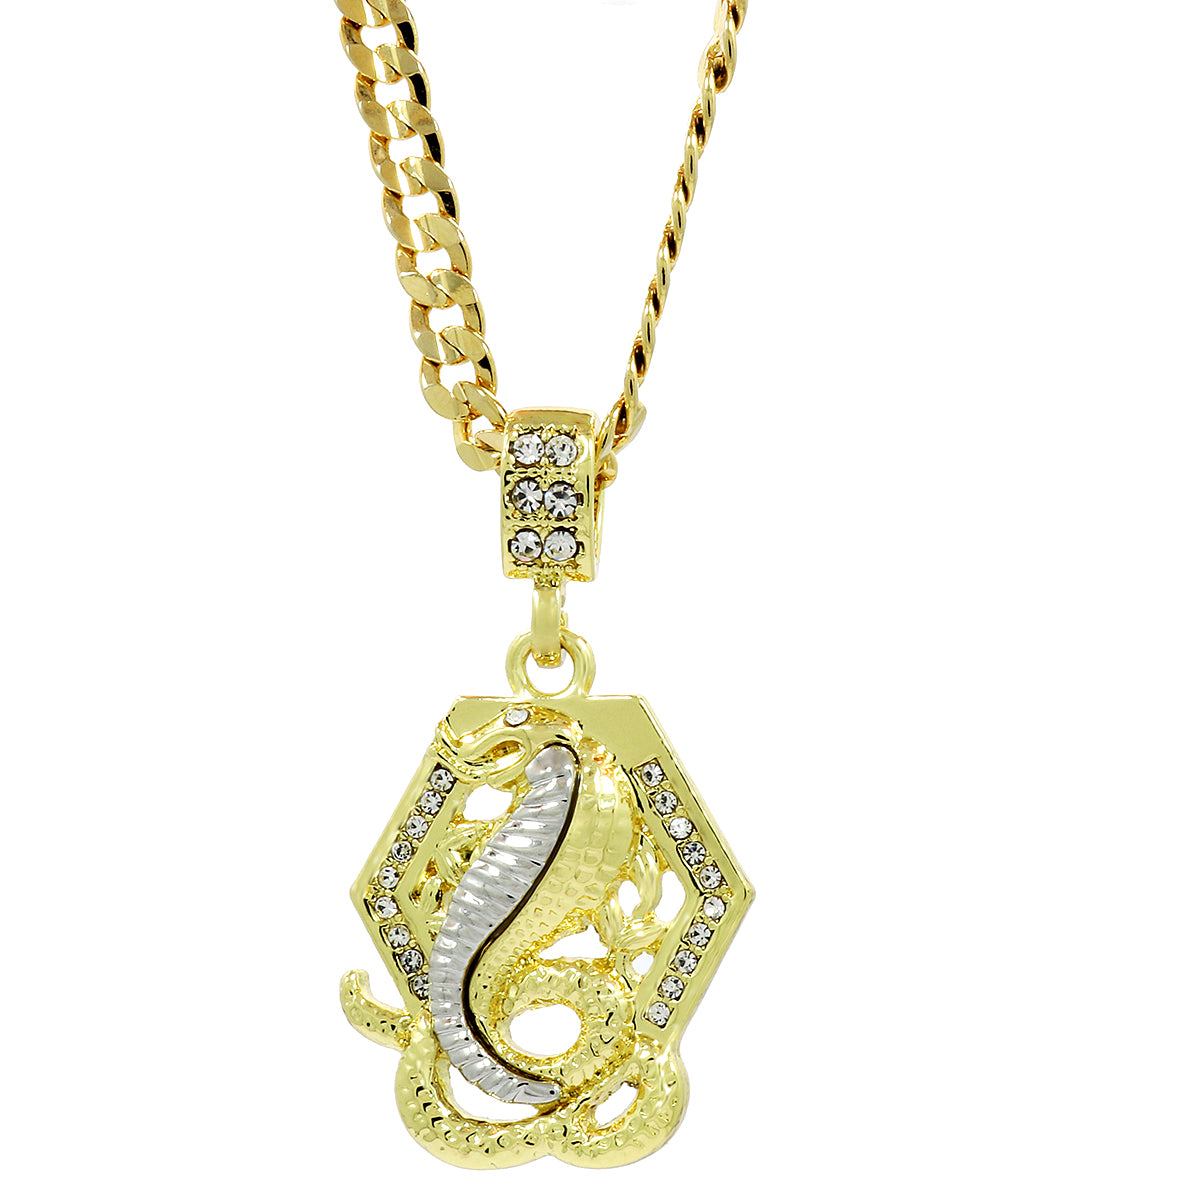 Small chain pendants the snake necklace blingkingstar jewelry the snake necklace aloadofball Gallery